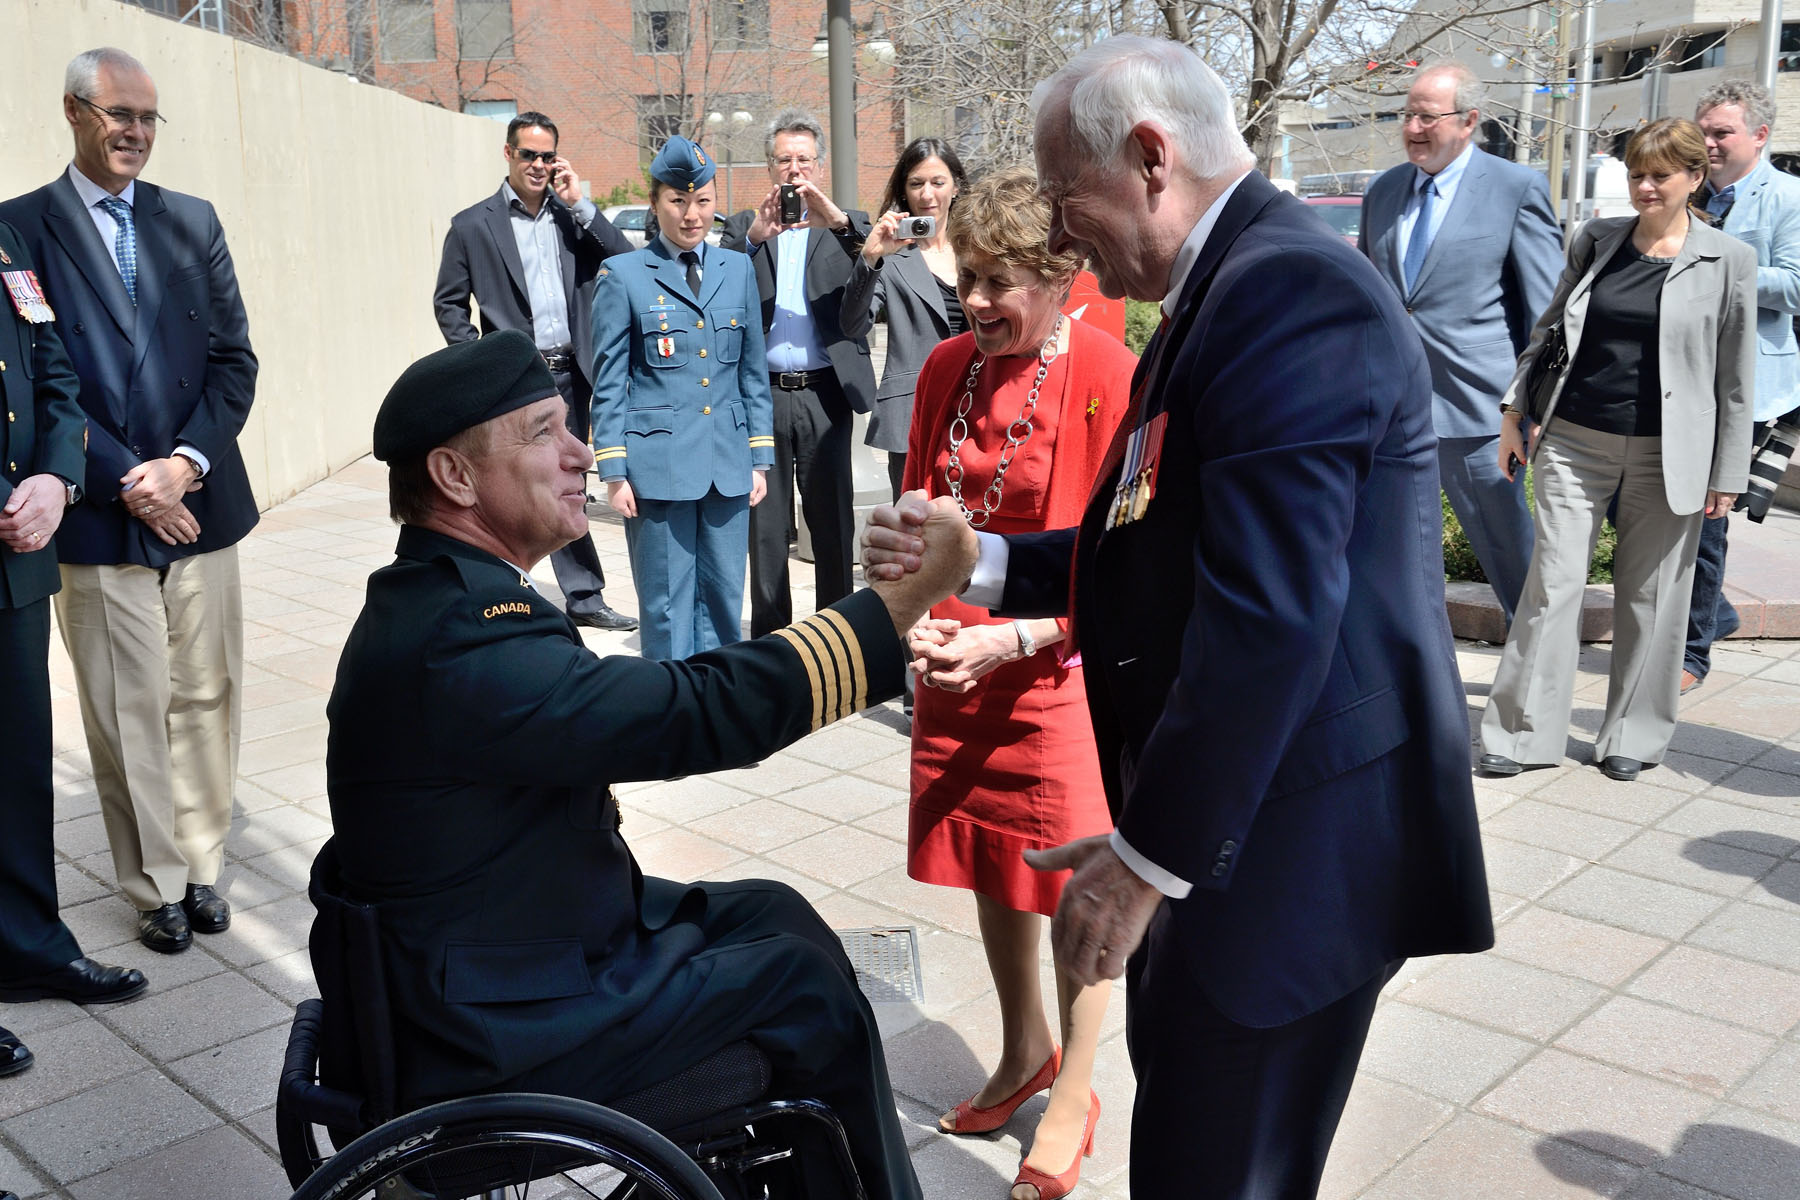 Upon his arrival at La Maison du Citoyen, Their Excellencies shook hands with Mr. Rick Hansen who will EMCEE the National Day of Honour Parade on Parliament Hill.